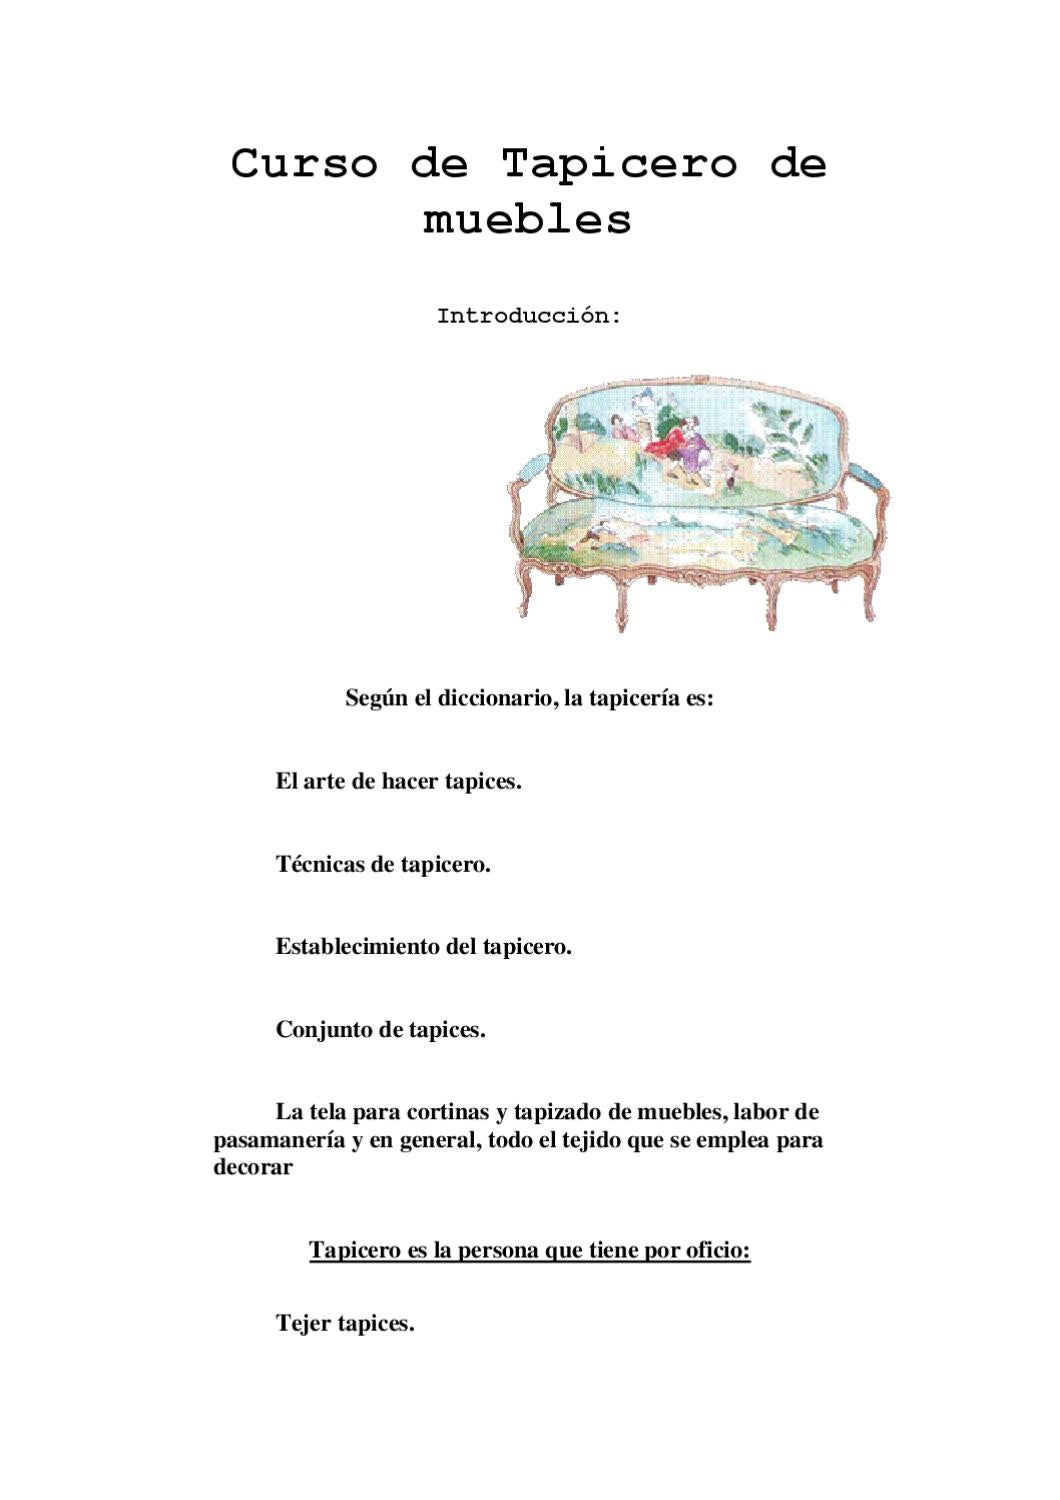 Curso de tapicer a by tapestry workerman issuu for Clasificacion de alfombras